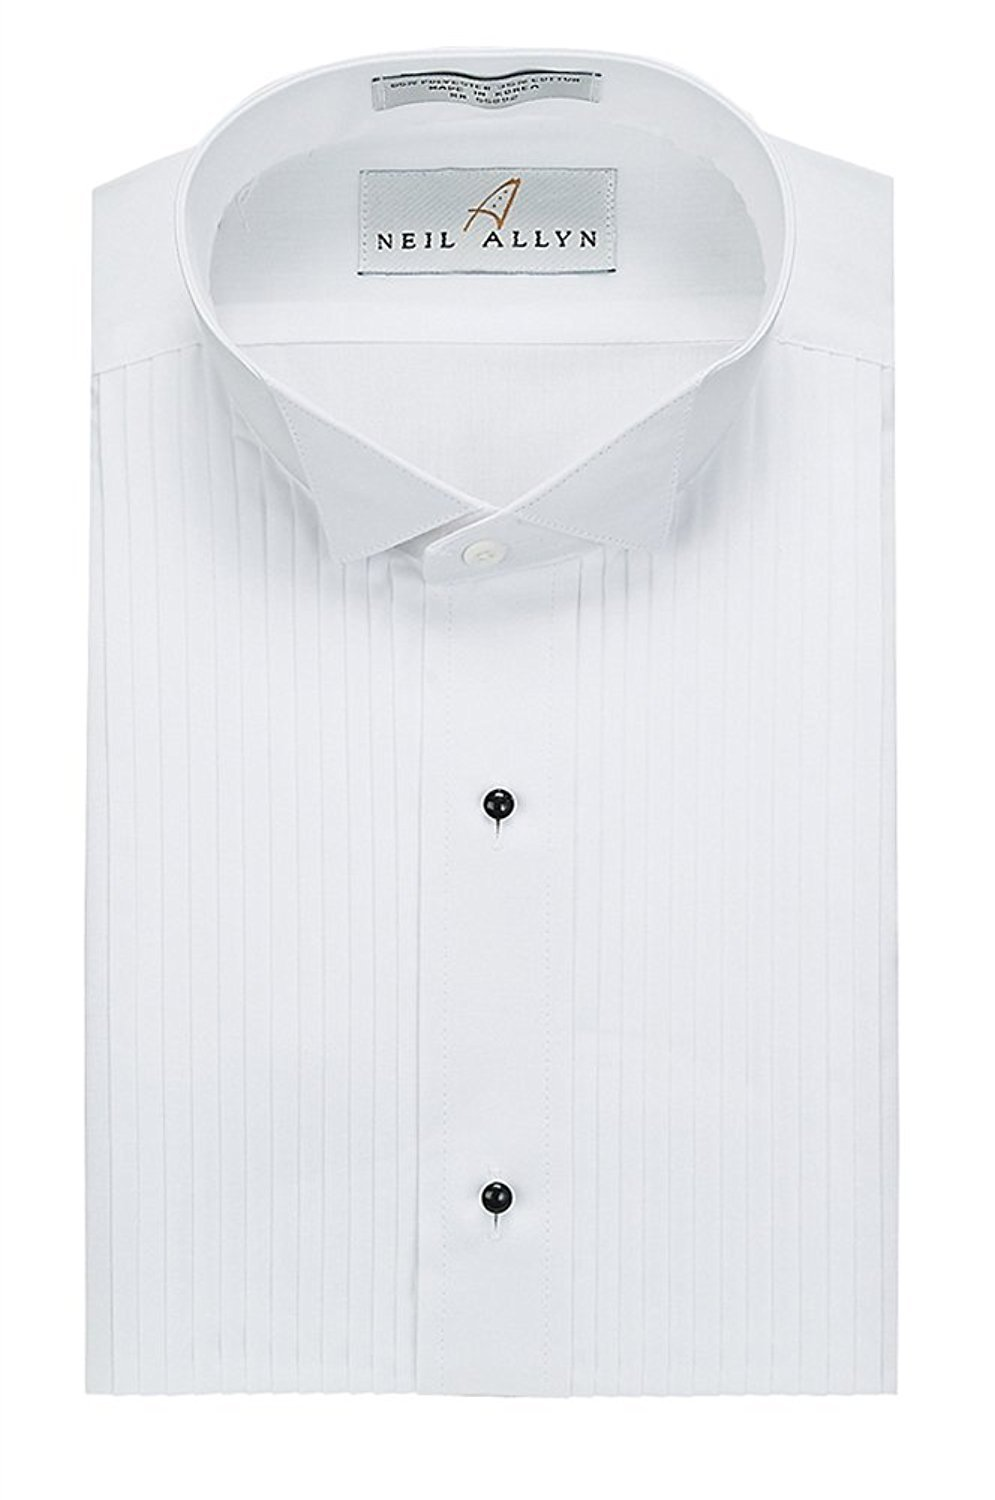 Neil Allyn Slim Fit Tuxedo Shirt - 100% Cotton Wing Collar with French Cuffs,White,Large (16.5) Neck 36/37 Sleeve by Neil Allyn